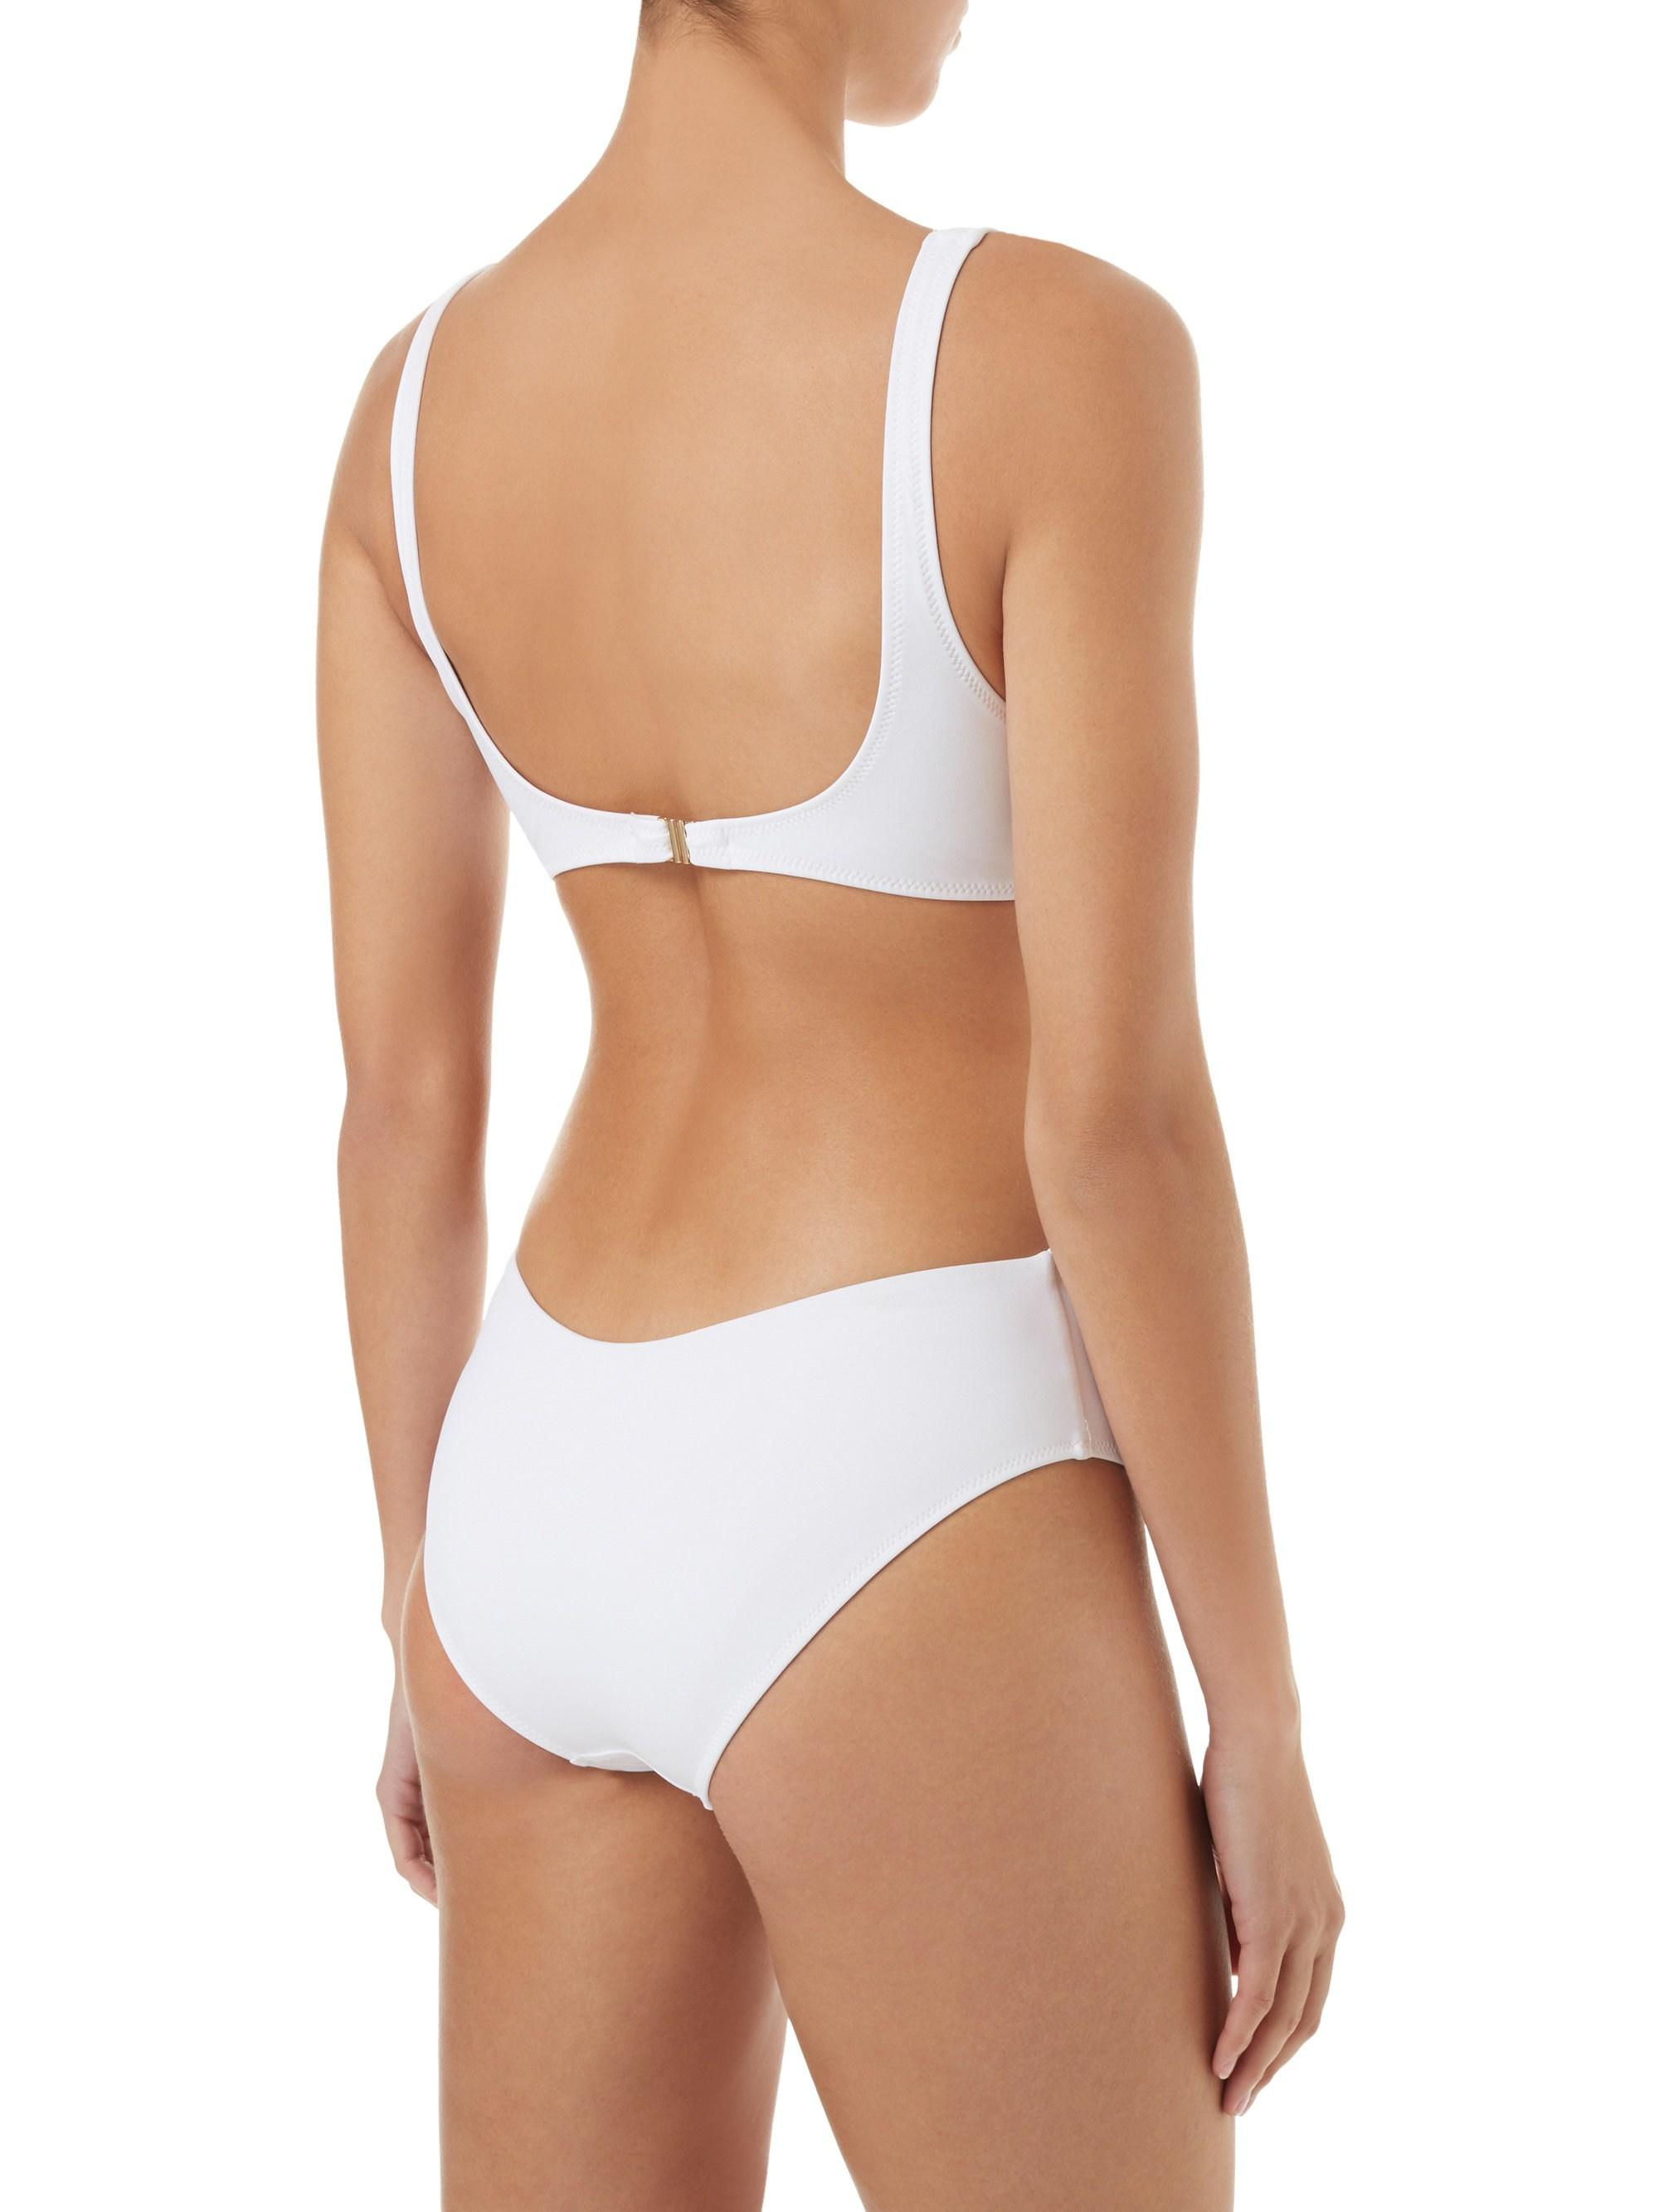 9d9aeca028 Melissa Odabash - Women s Del Mar Cut Out One-piece Swimsuit - White - Size.  View fullscreen